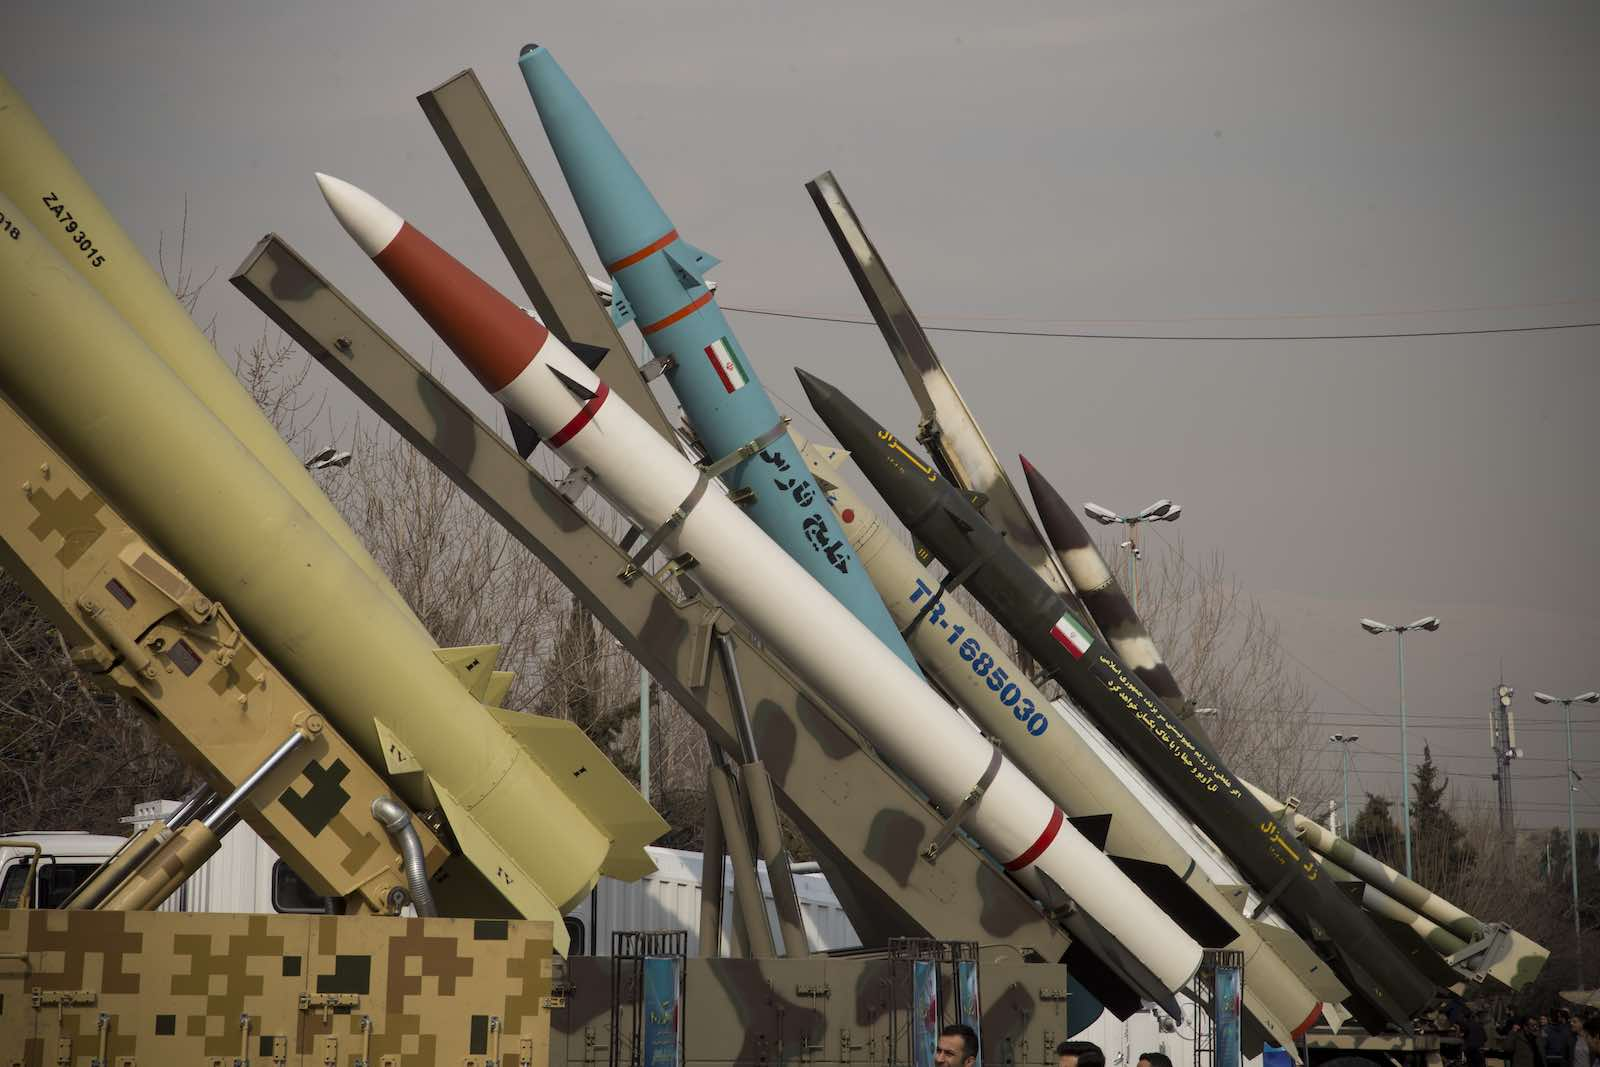 A weaponry and military equipment exhibition on the occasion of the 40th anniversary of the Iranian revolution, Tehran, 7 February  2019 (Photo: Rouzbeh Fouladi/NurPhoto via Getty)